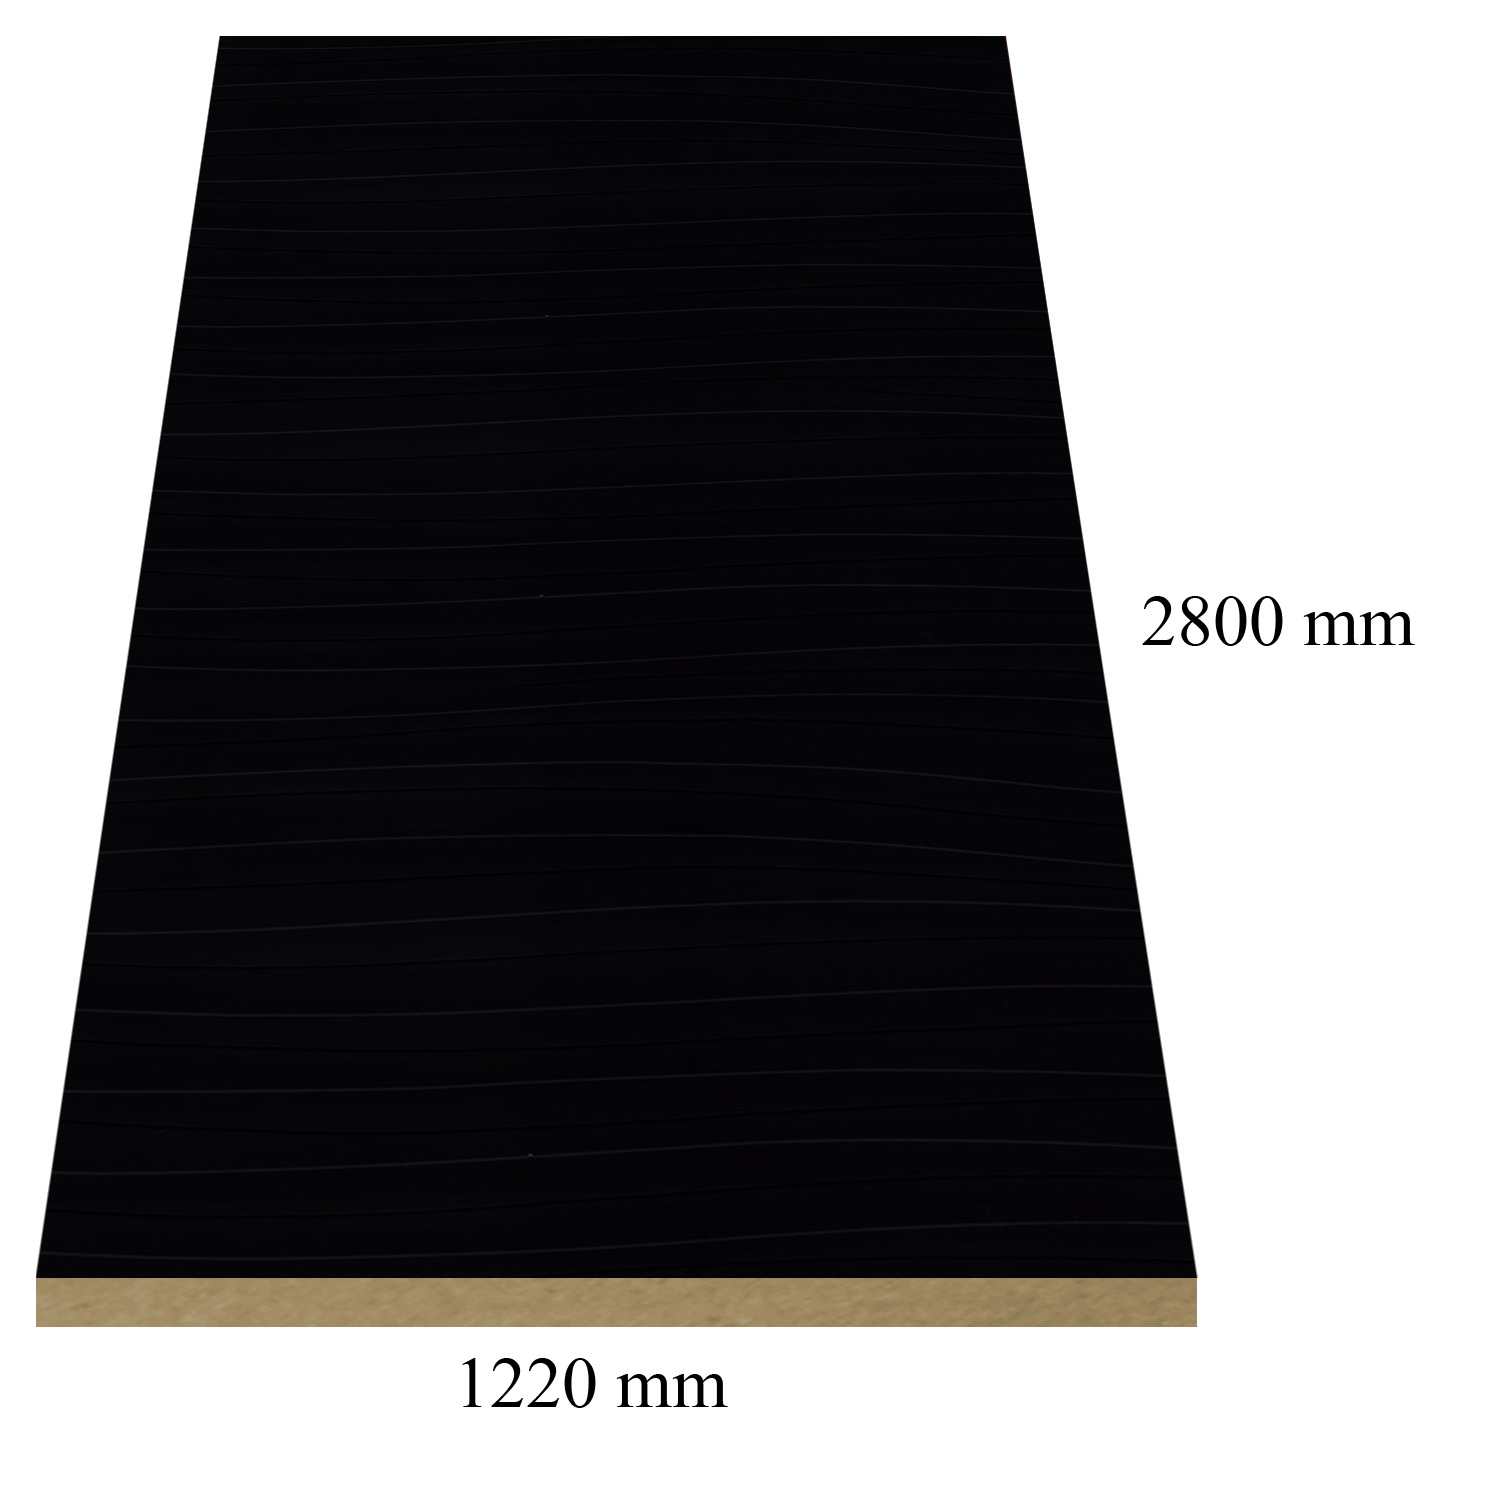 2 - 968/475 Black wave gloss - PVC coated 18 mm MDF